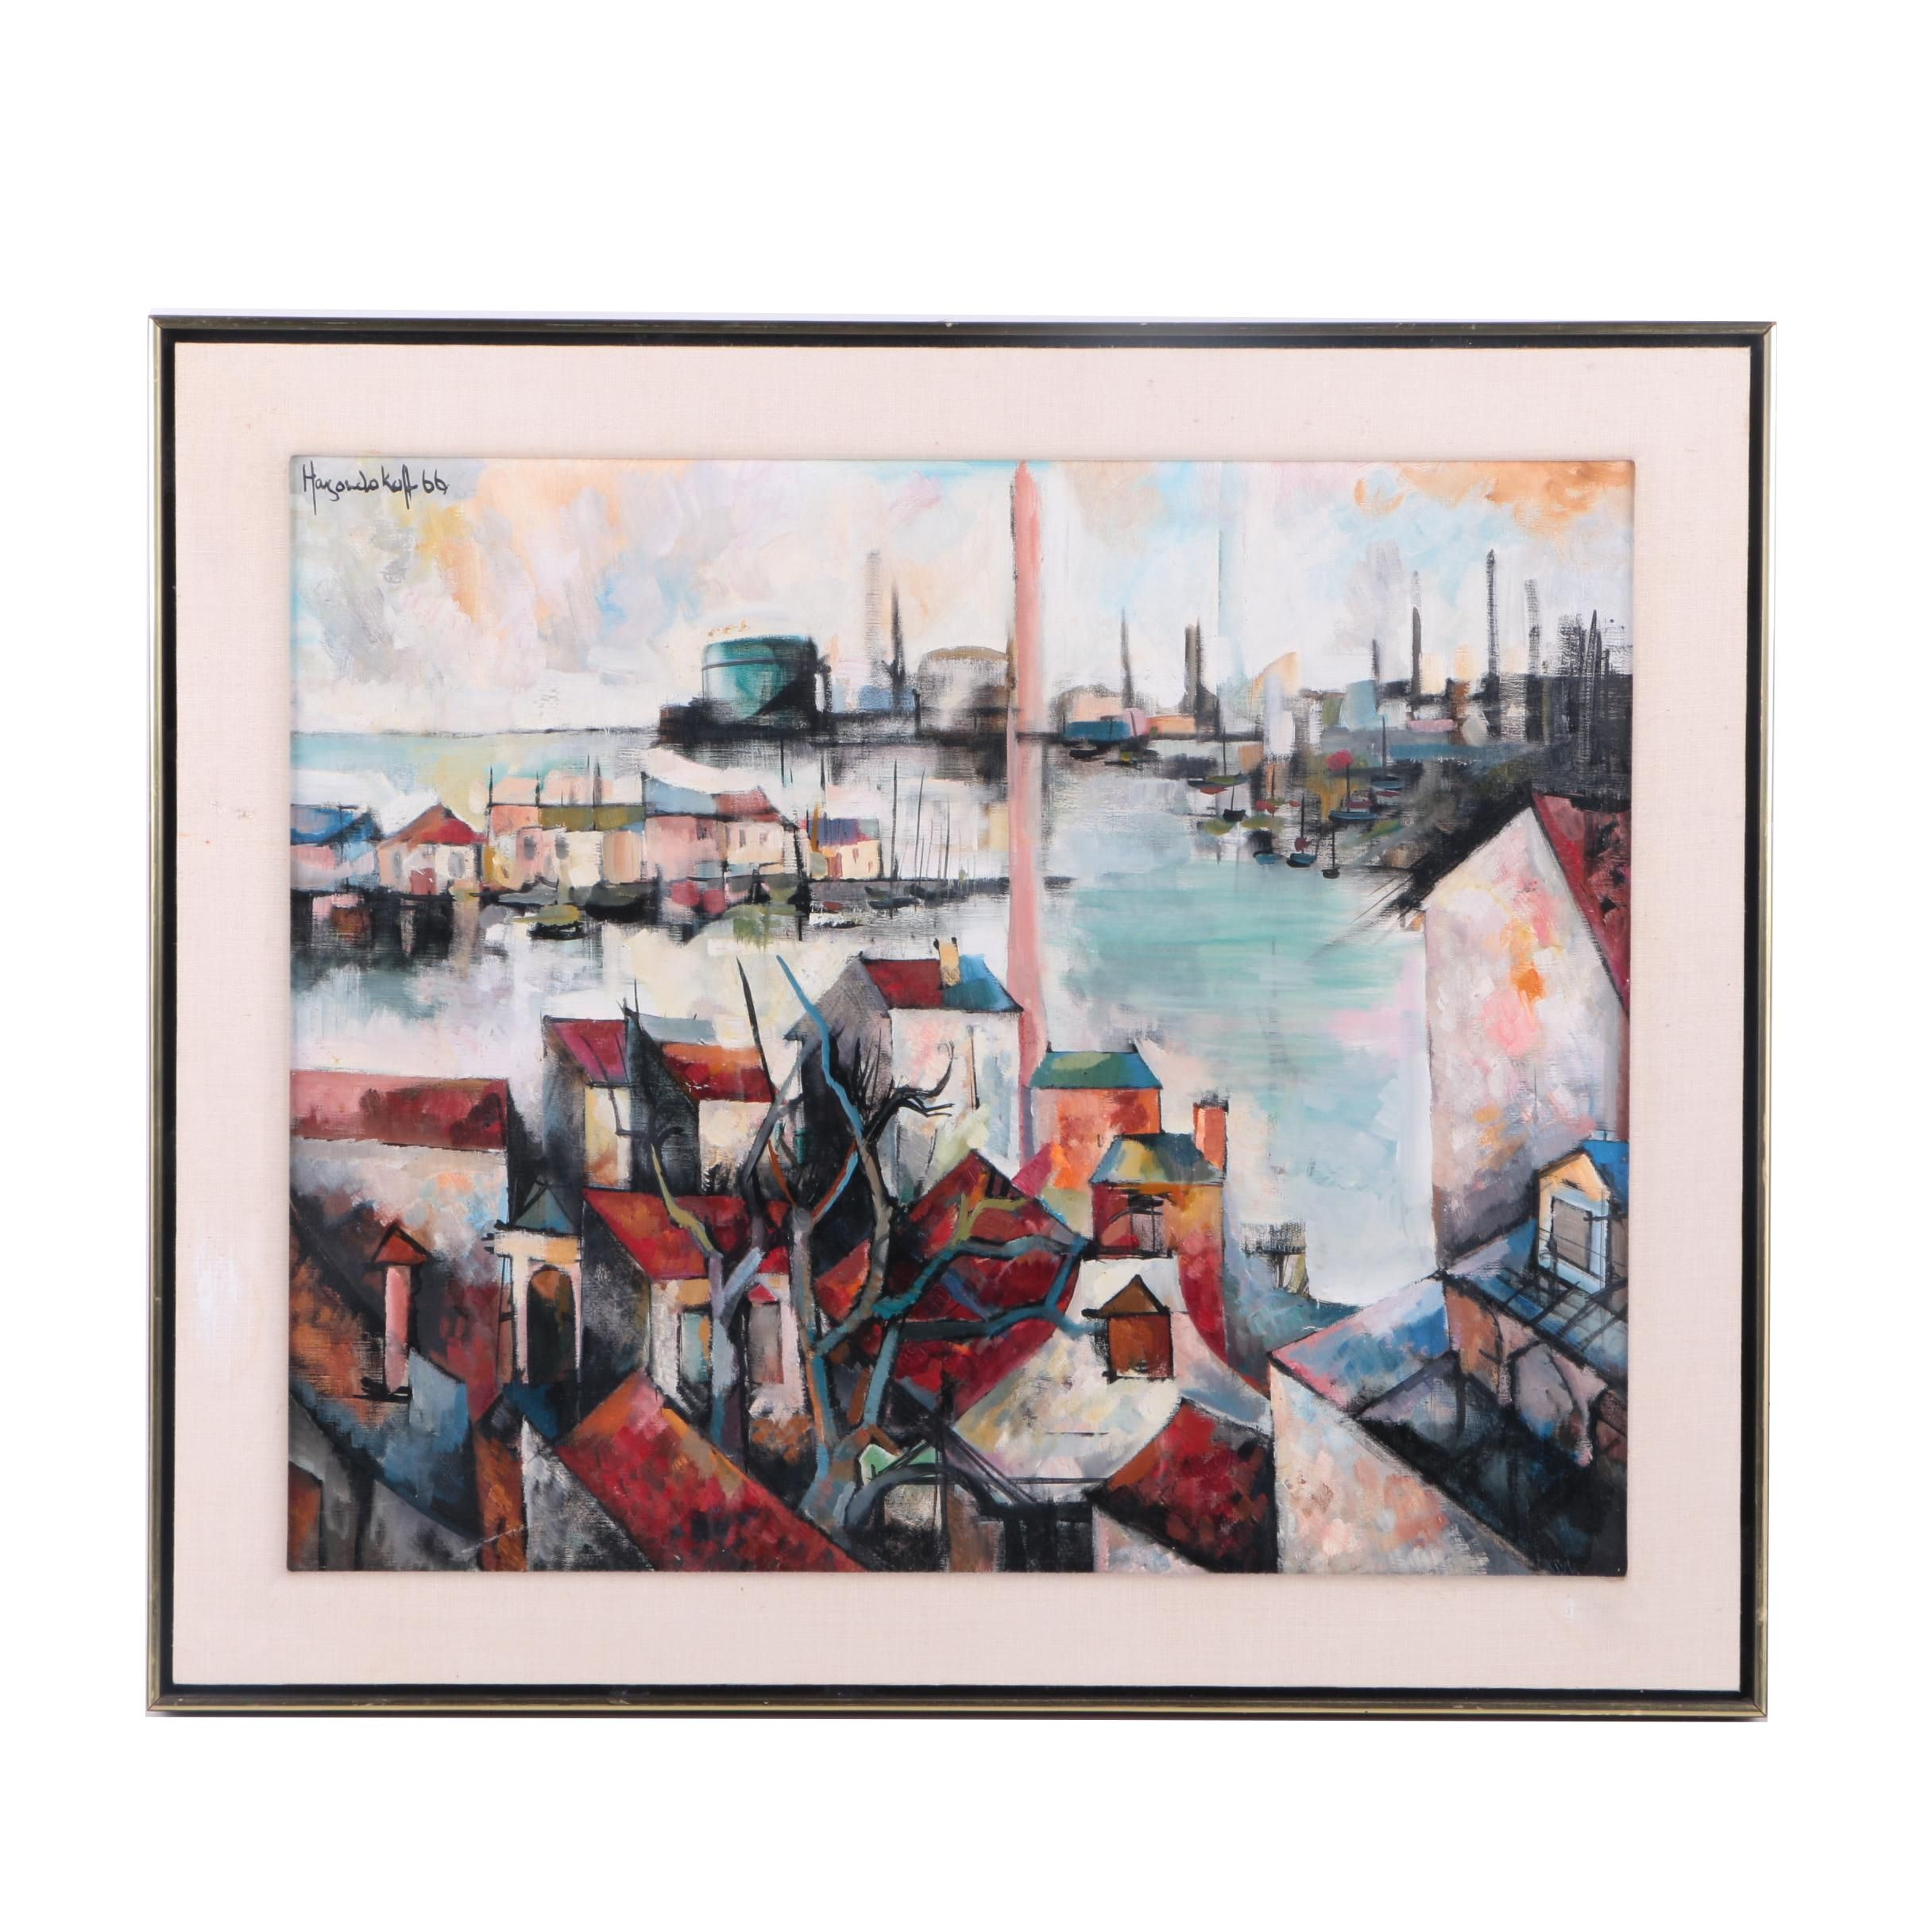 1966 Koff Oil Painting on Canvas of a City Harbor